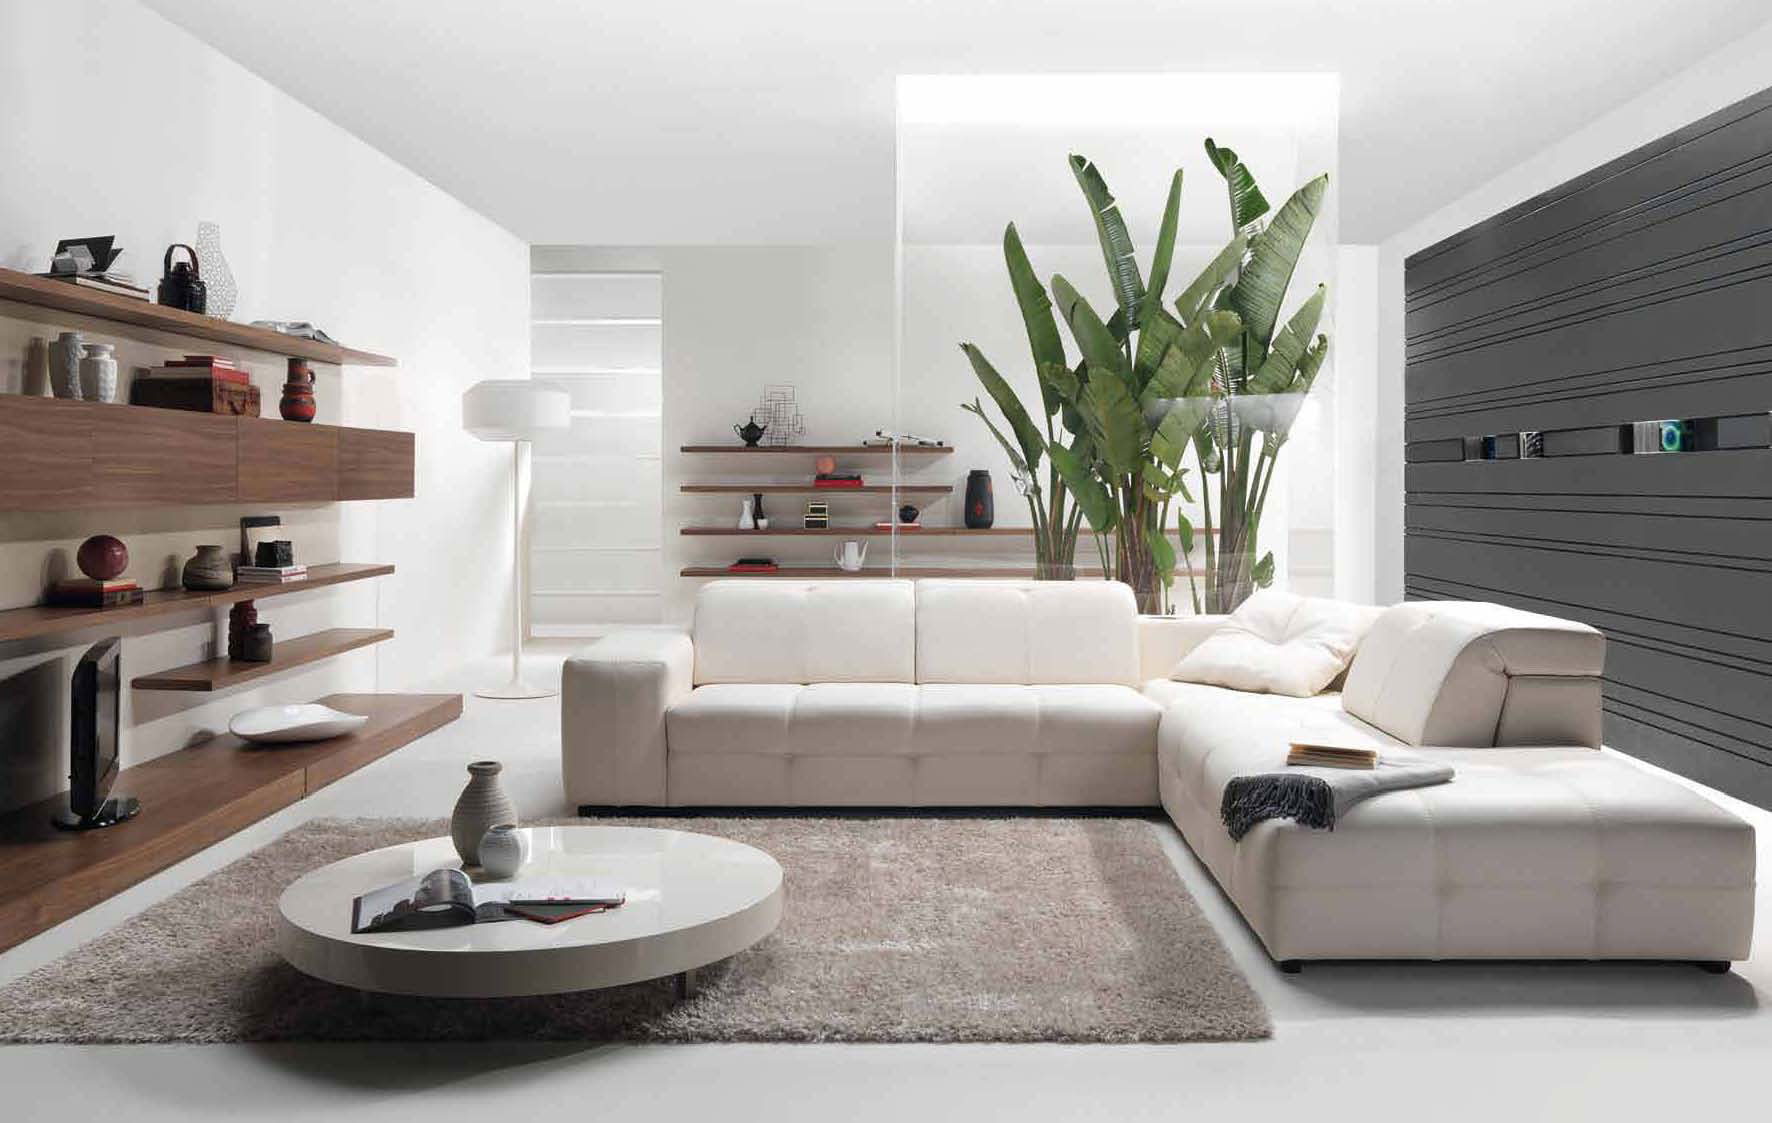 living-room-modern-home-living-room-pictures-modern-decorating-ideas-for-living-room-pictures-modern-living-room-decorating-ideas-pictures-modern-living-room-decorating-pictures-modern-living-roo